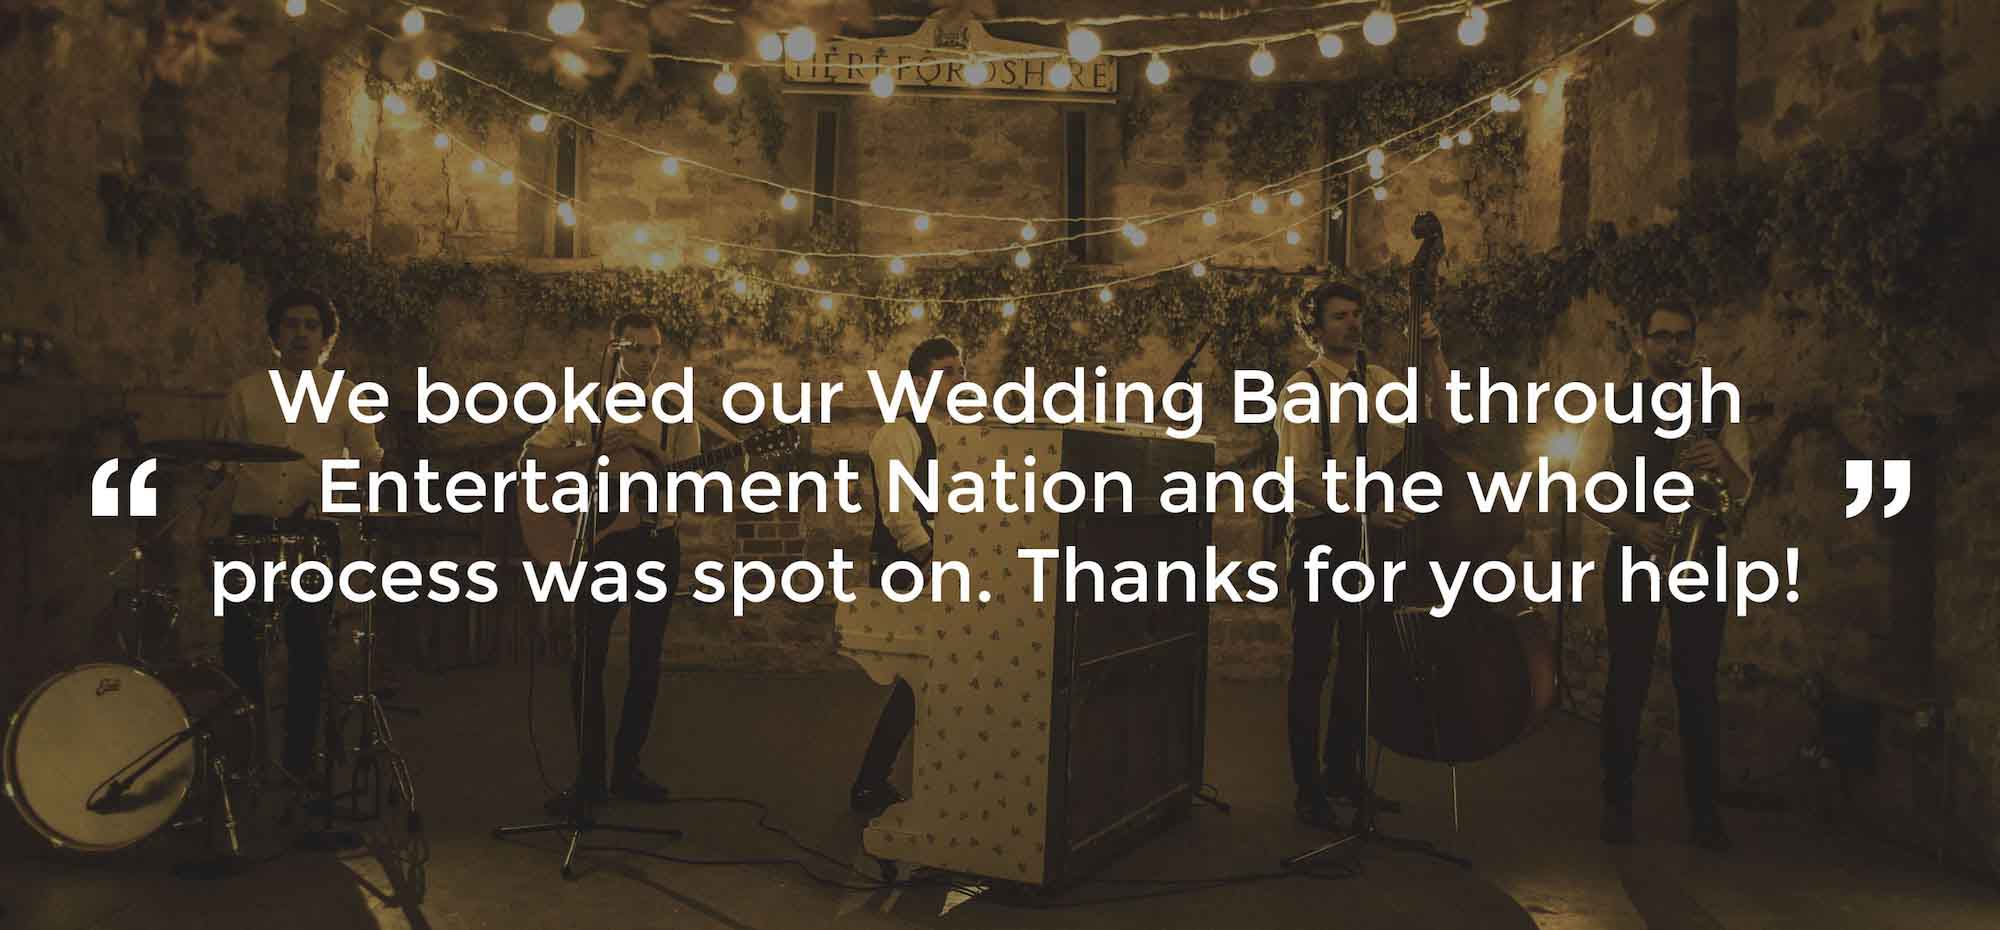 Client Review of a Wedding Band Worldwide